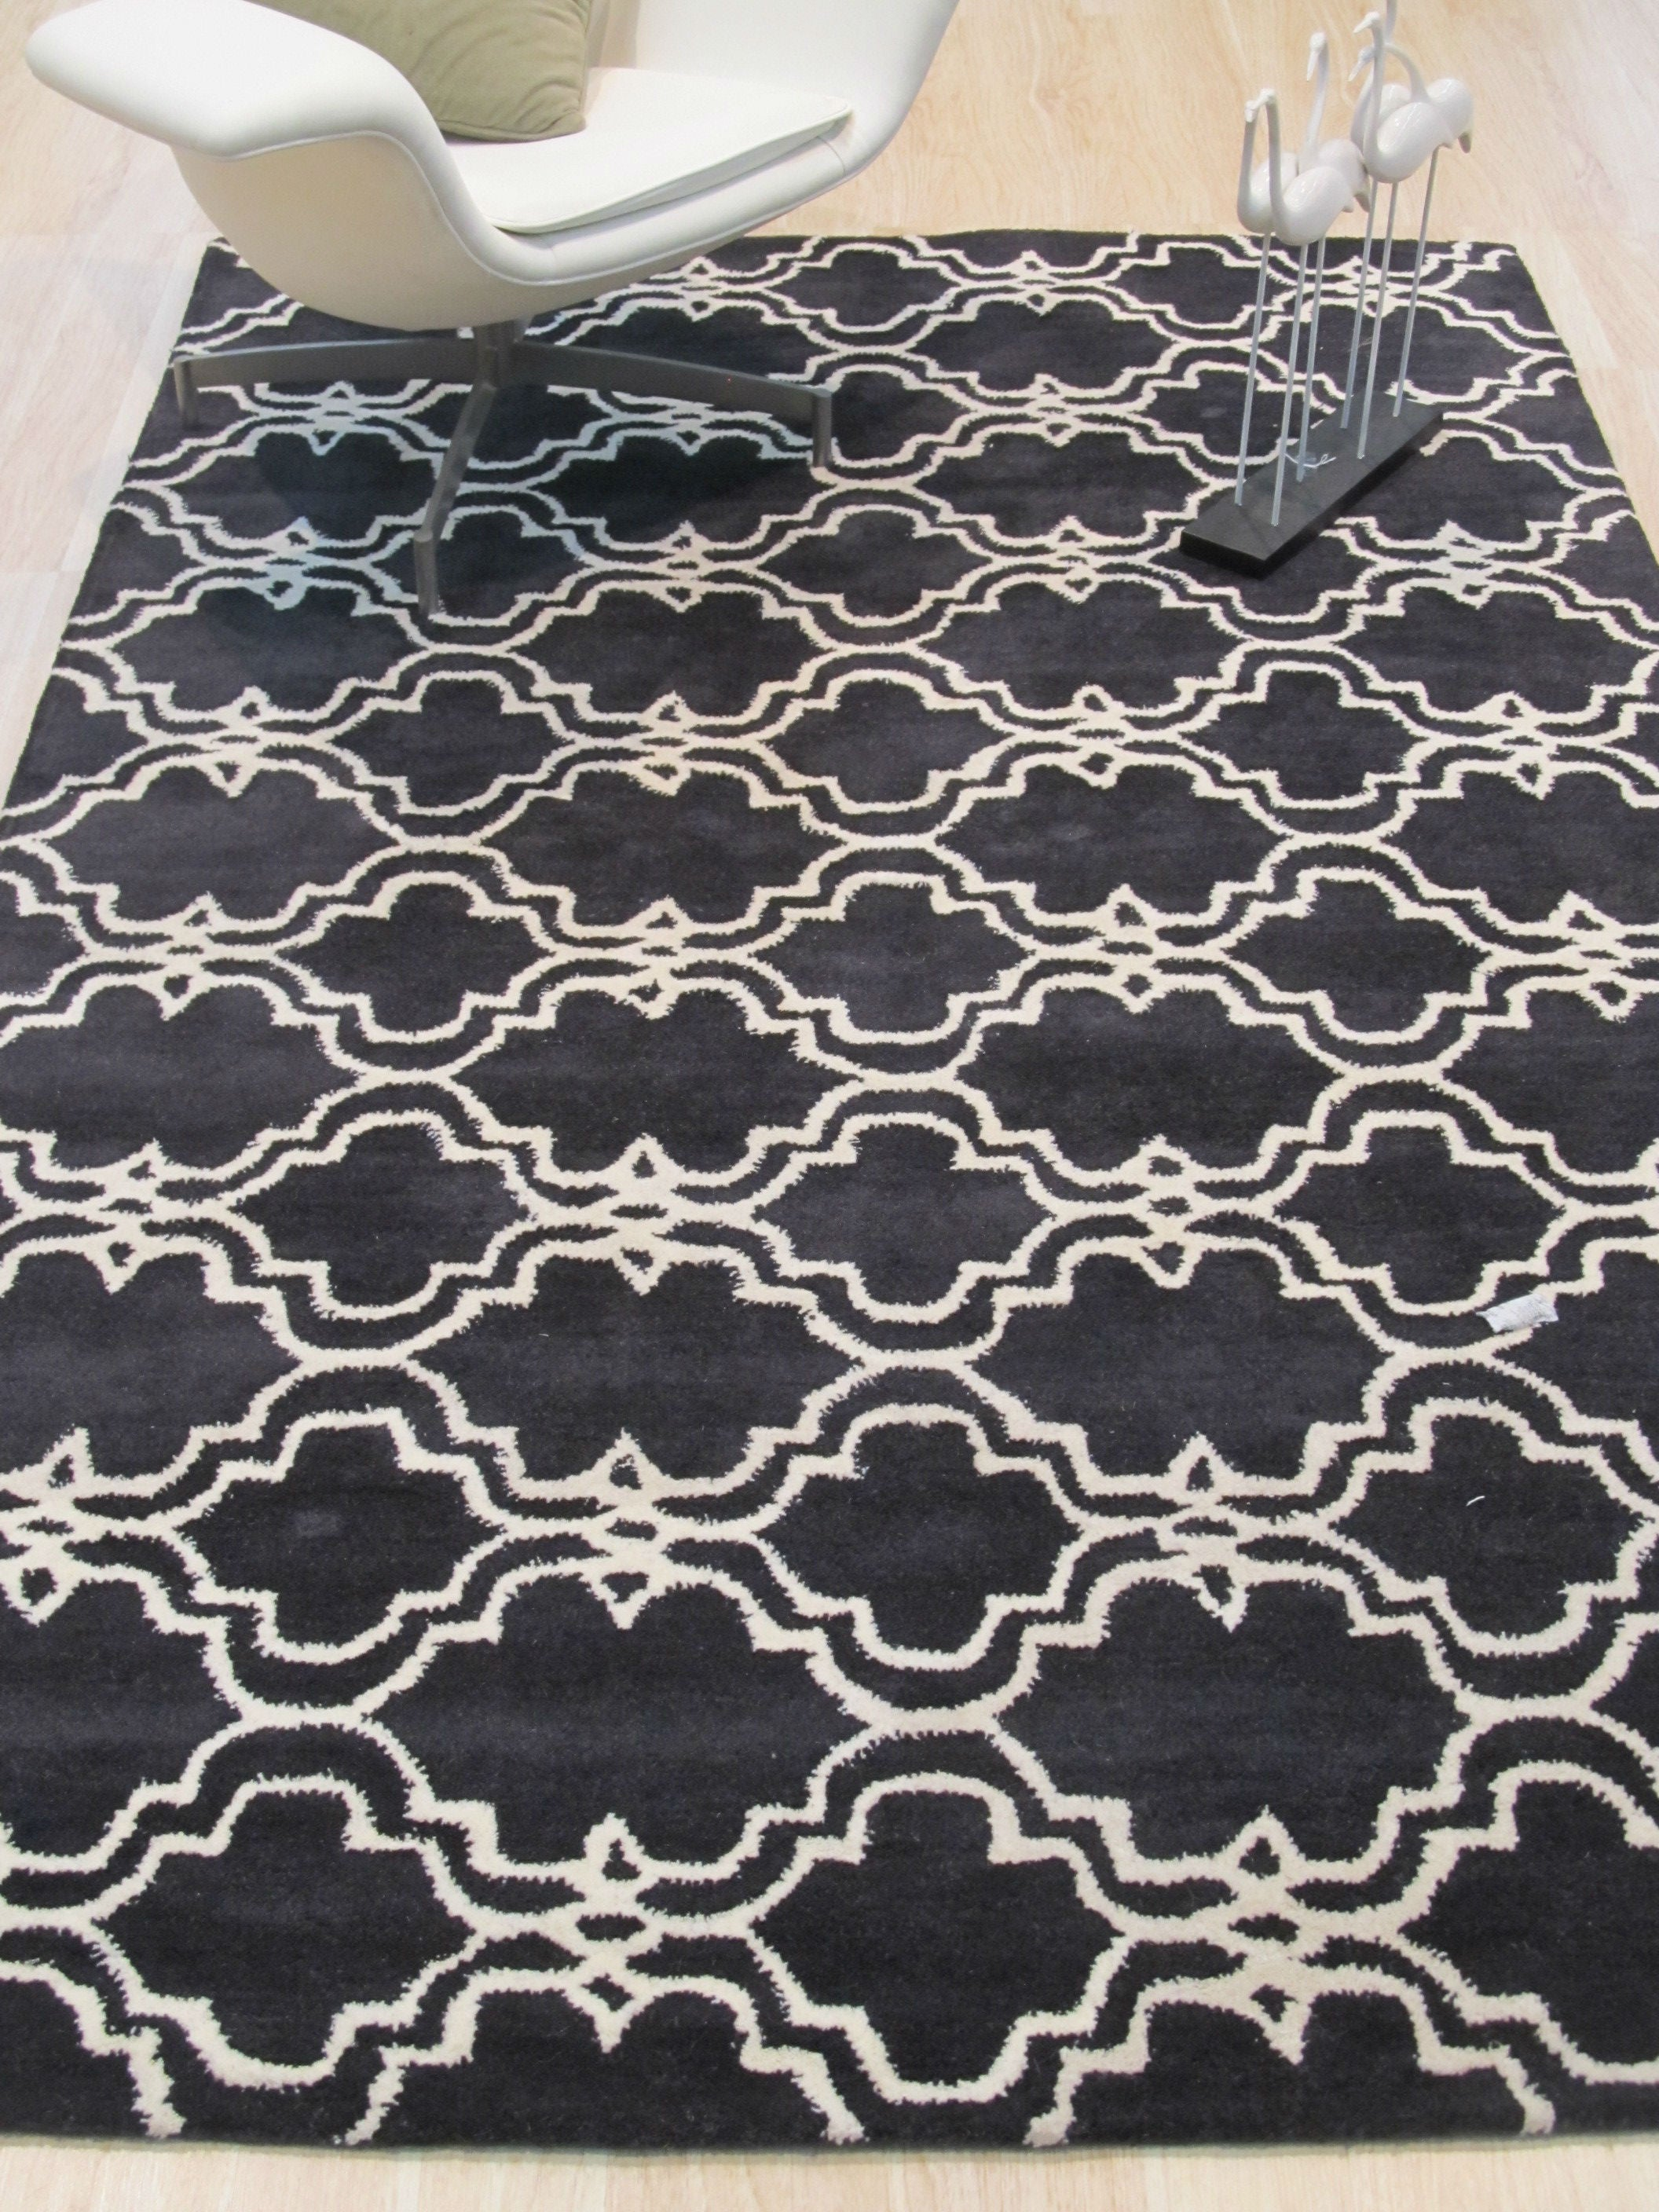 EORC Hand-tufted Wool Black Traditional Trellis Moroccan Rug